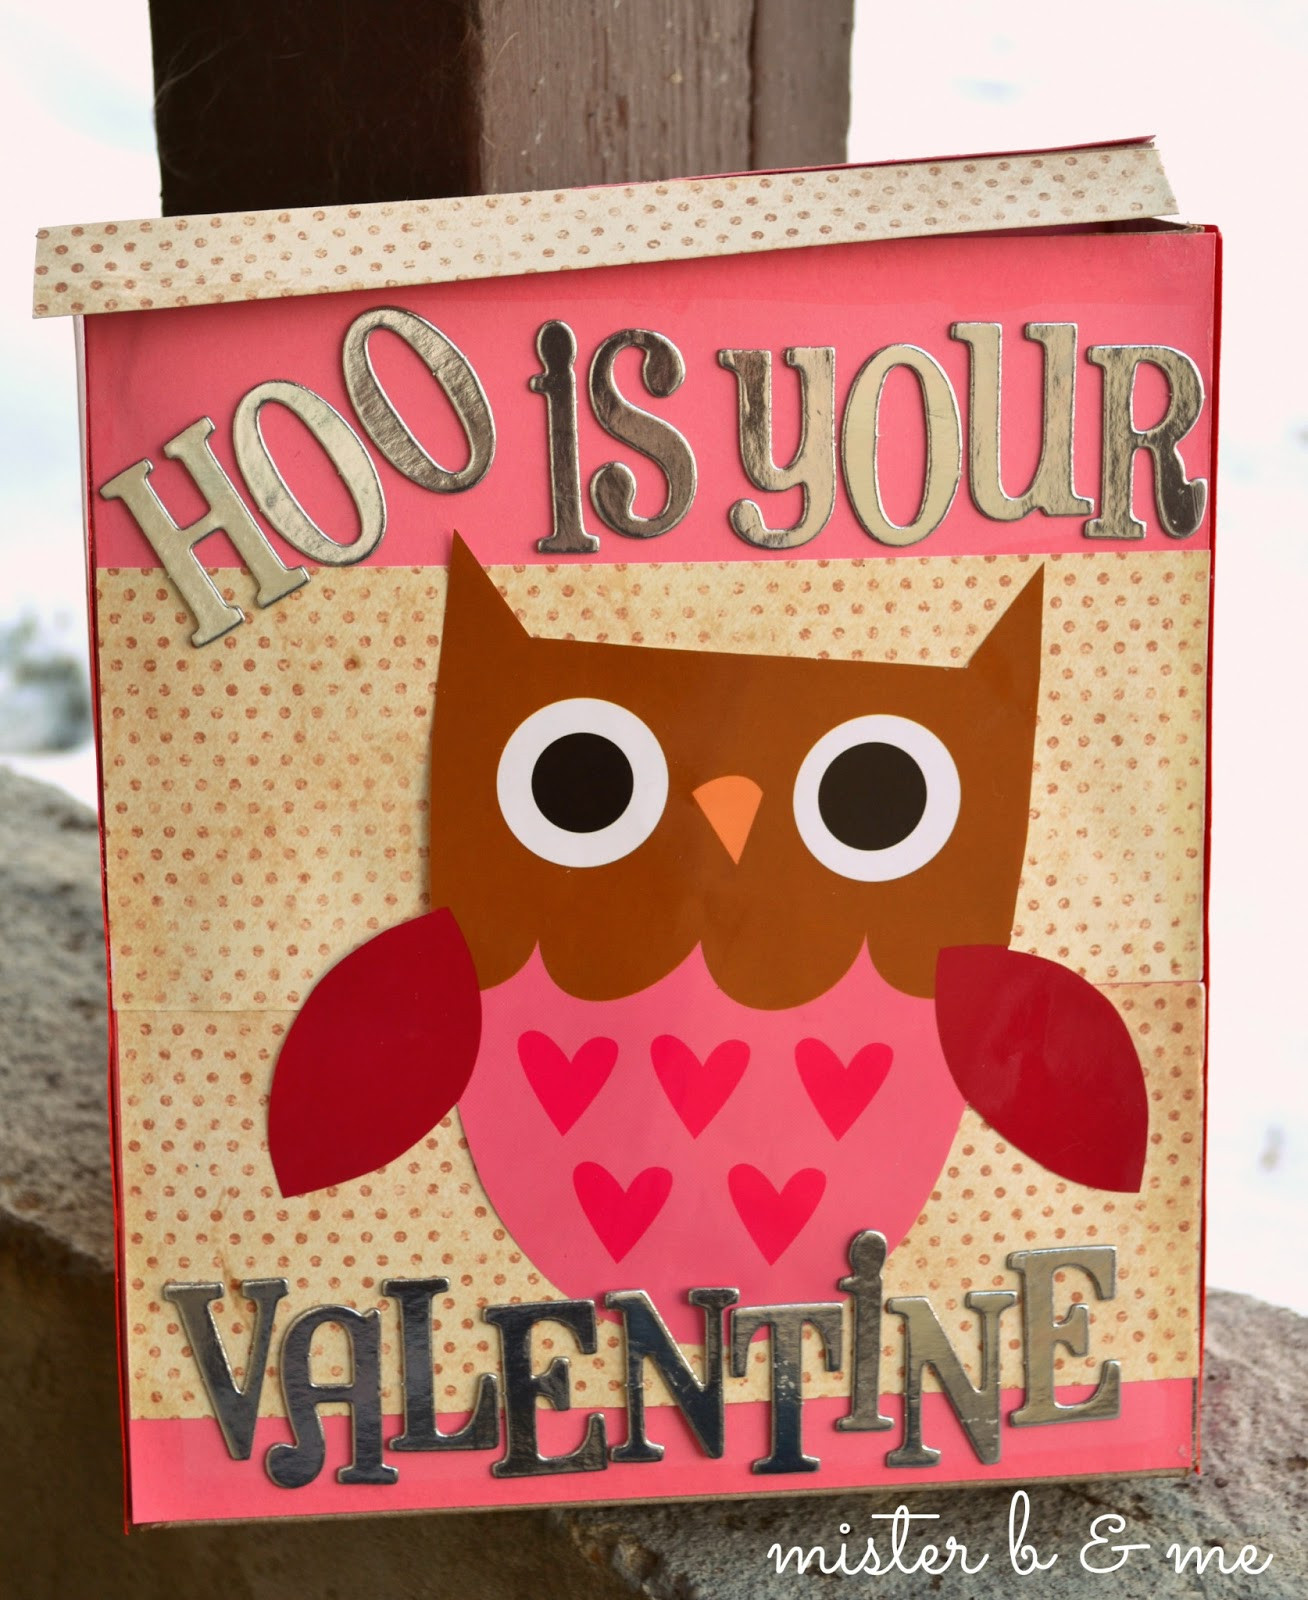 Best ideas about DIY Valentine Box . Save or Pin mister b and me diy valentines box Now.